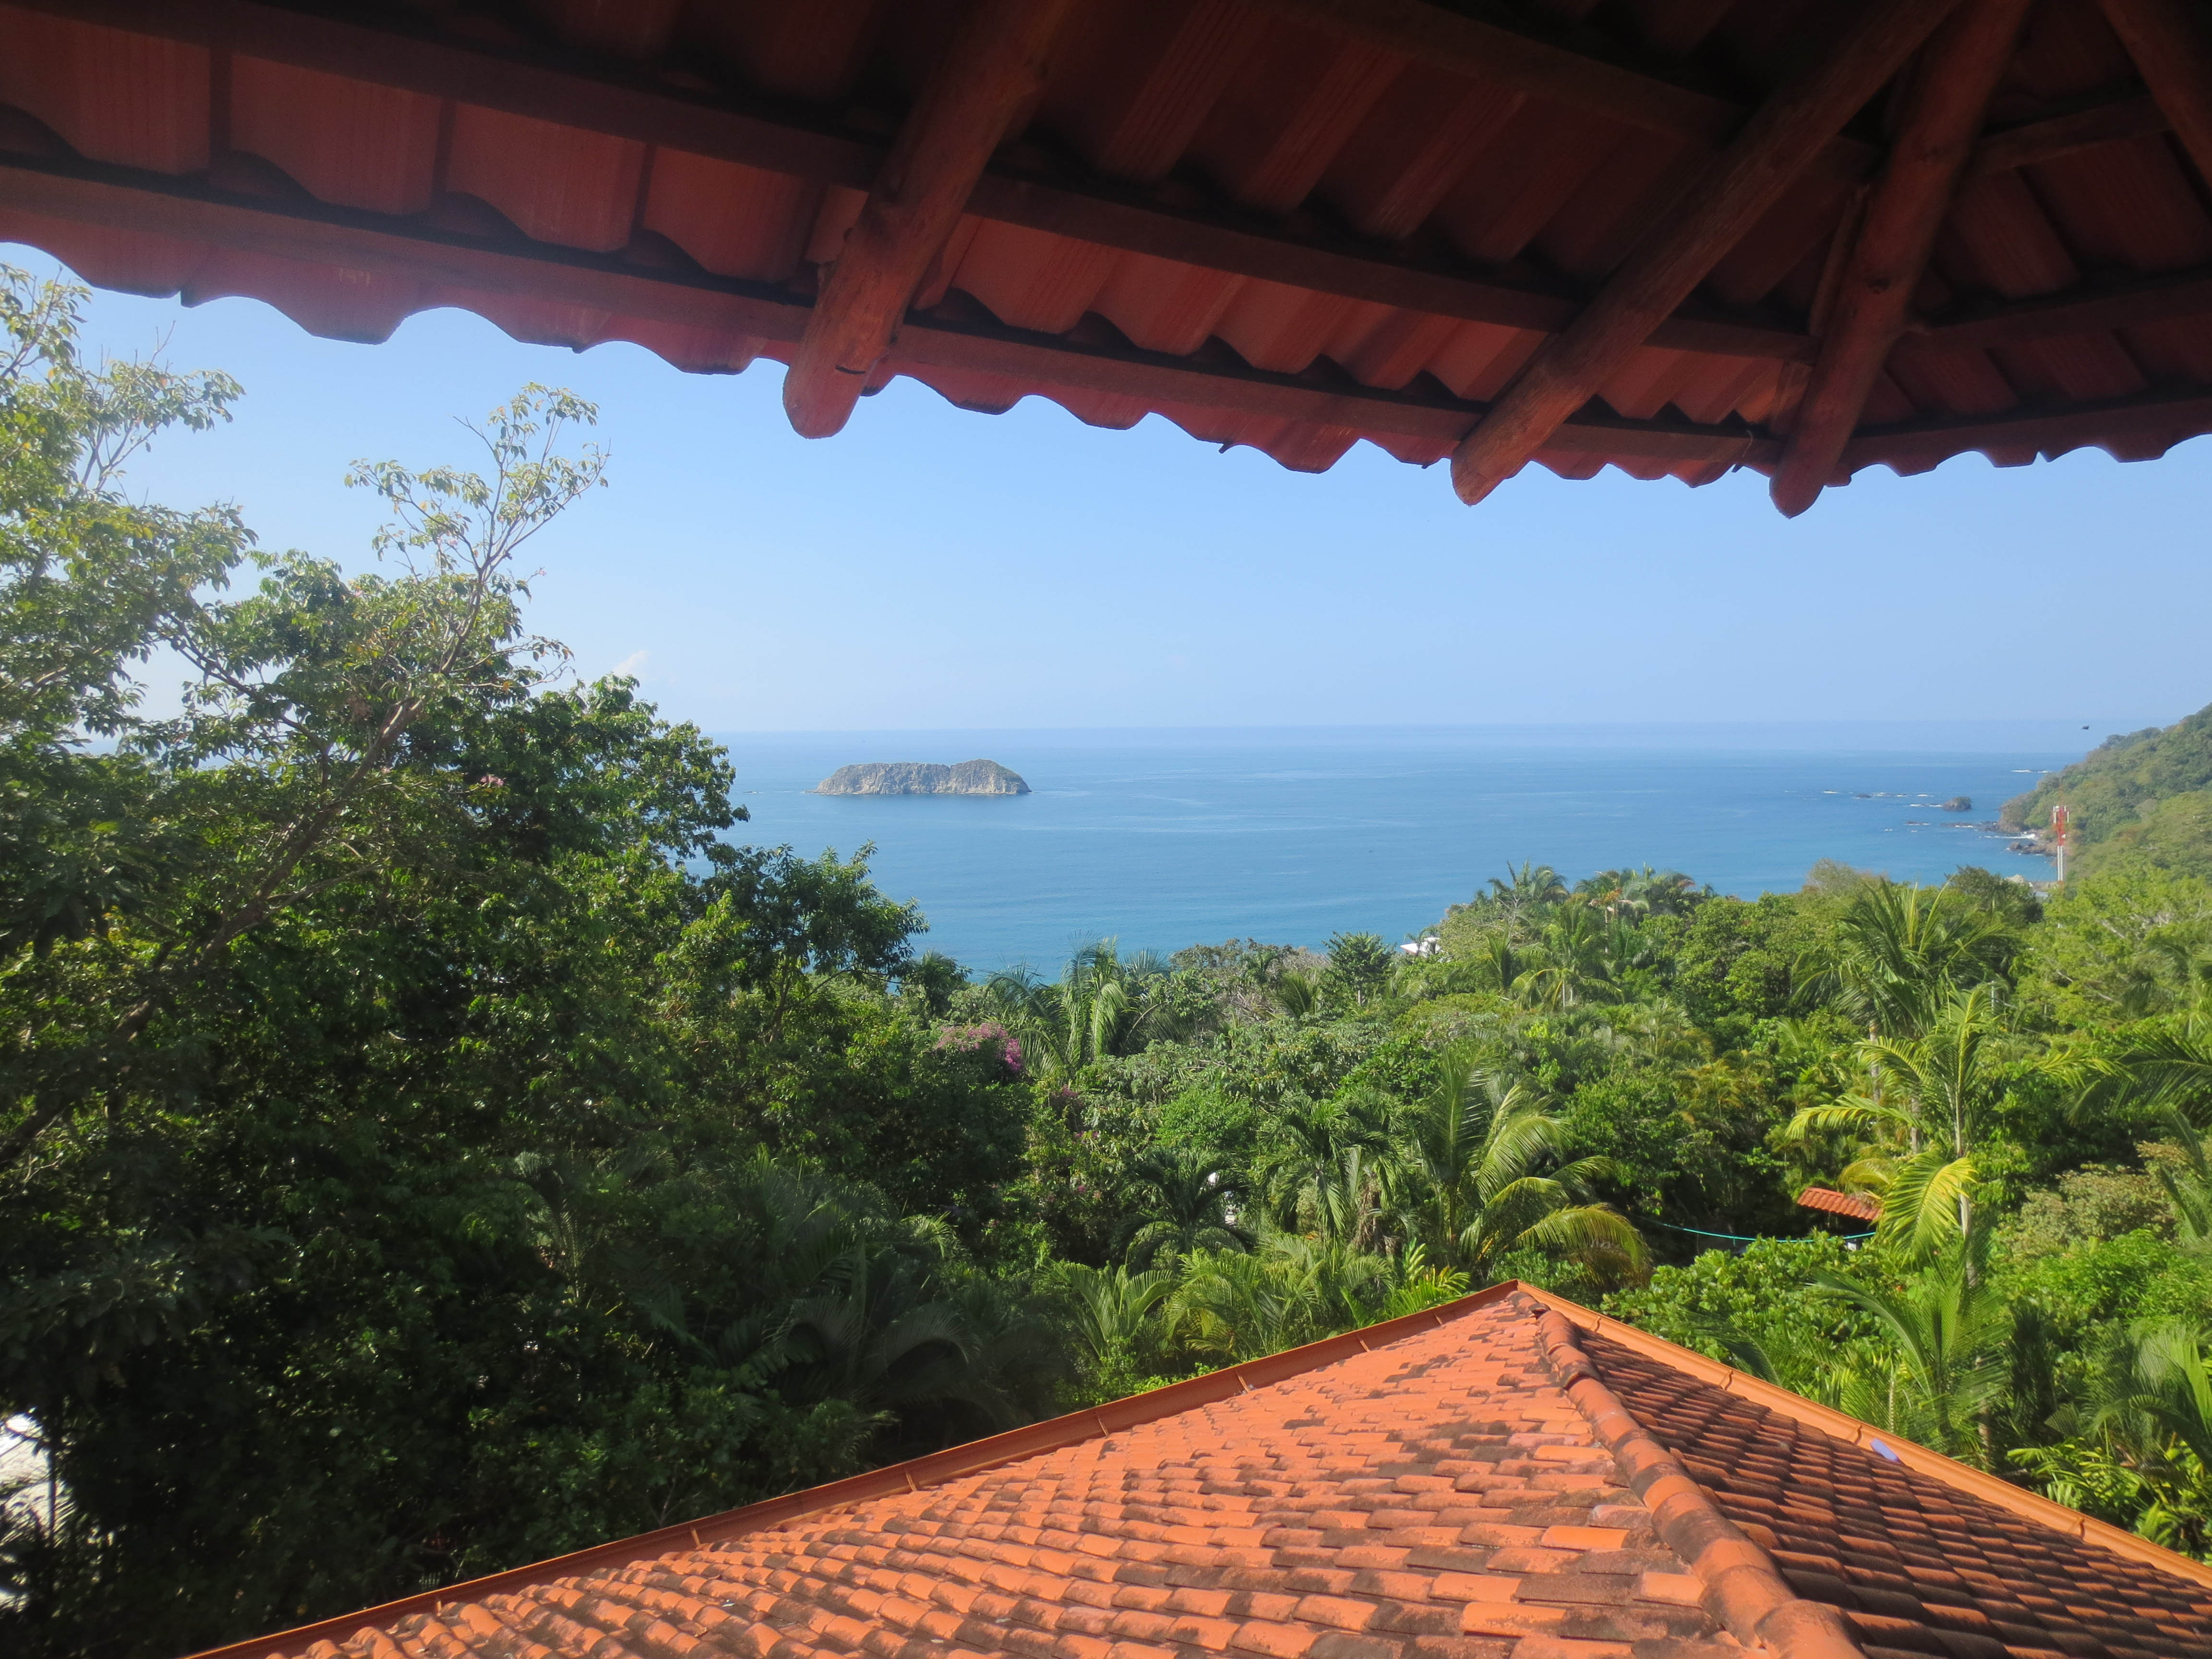 Things to do in Manuel Antonio, Costa Rica: The Best Places, Activities, and Restaurants